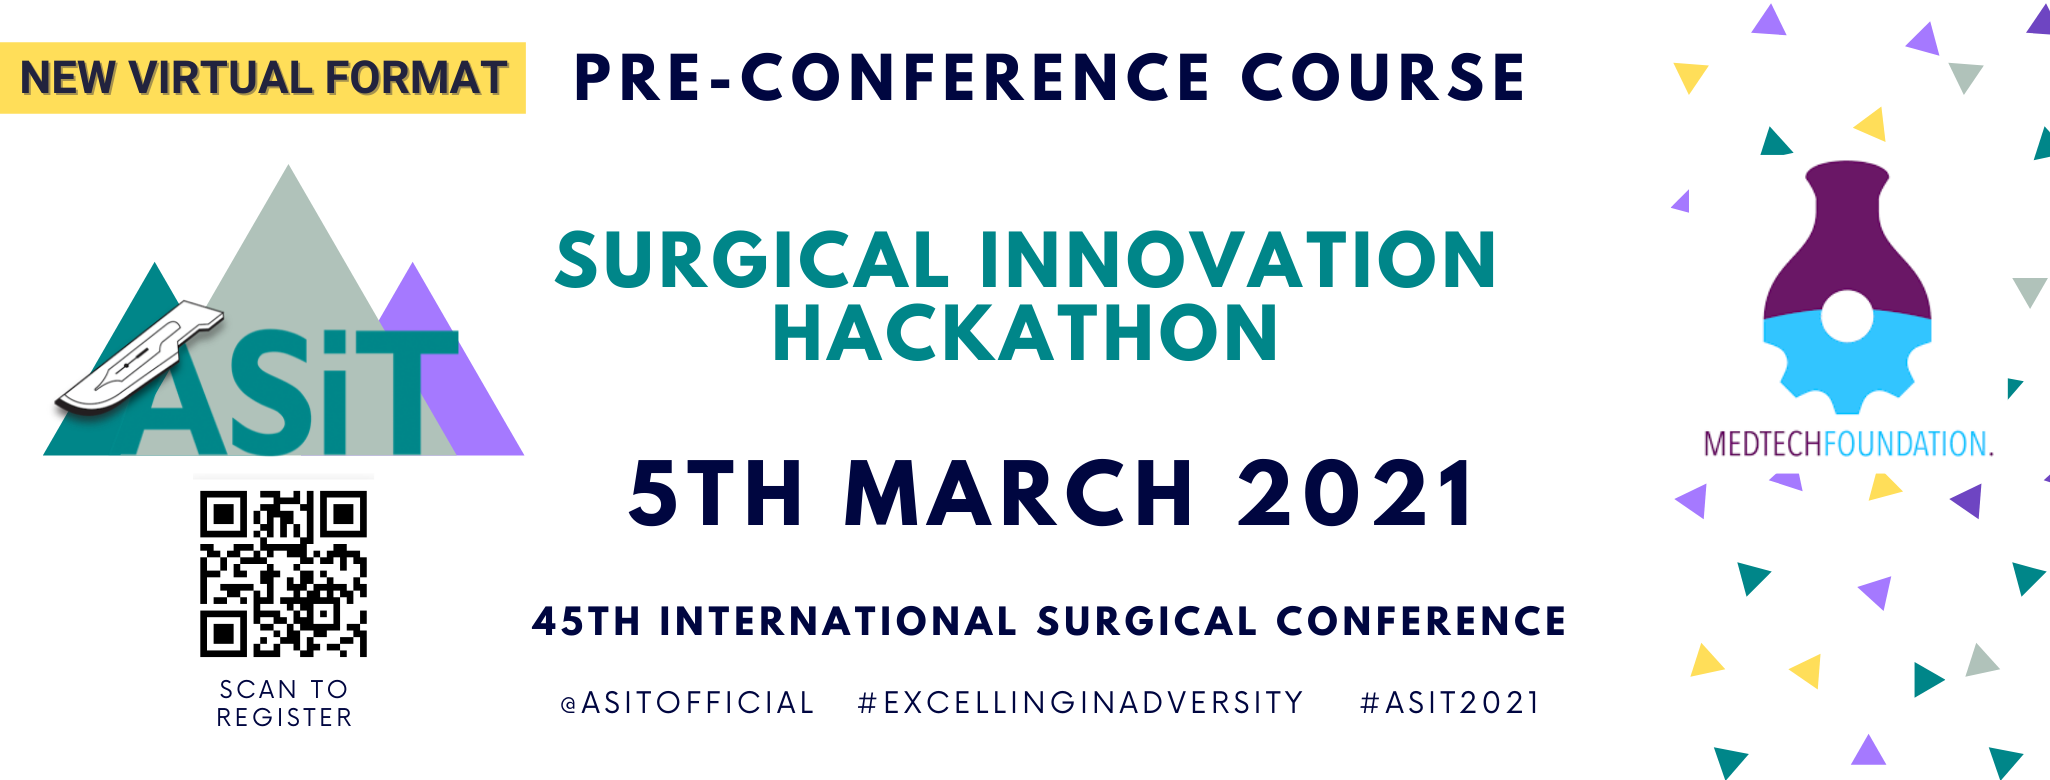 Surgical Innovation Hackathon: Pre-Conference Course